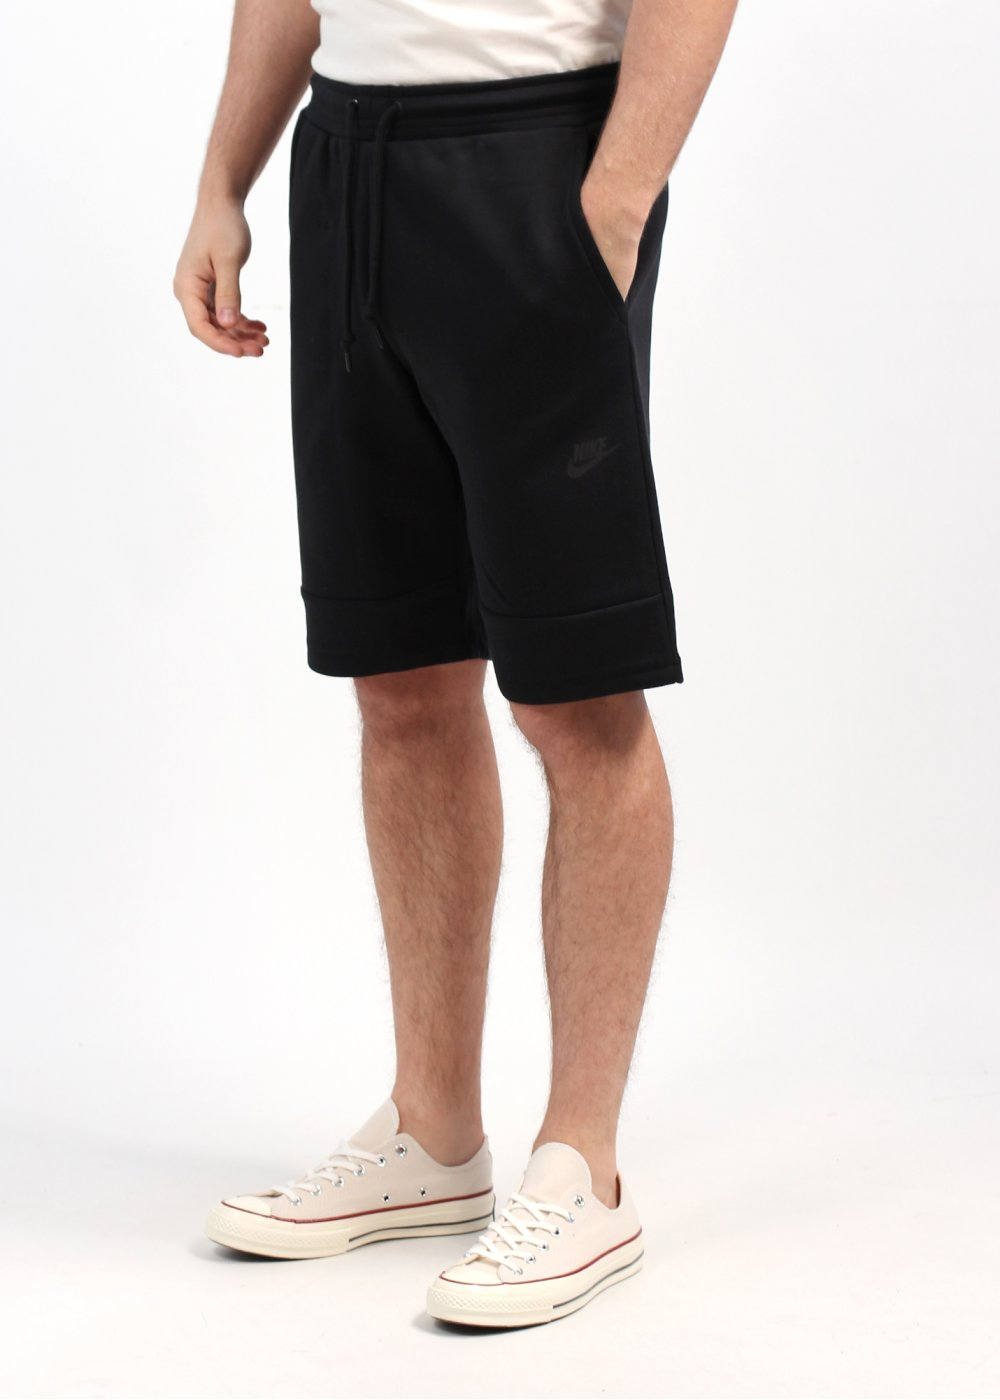 Nike Tech Fleece Short Black